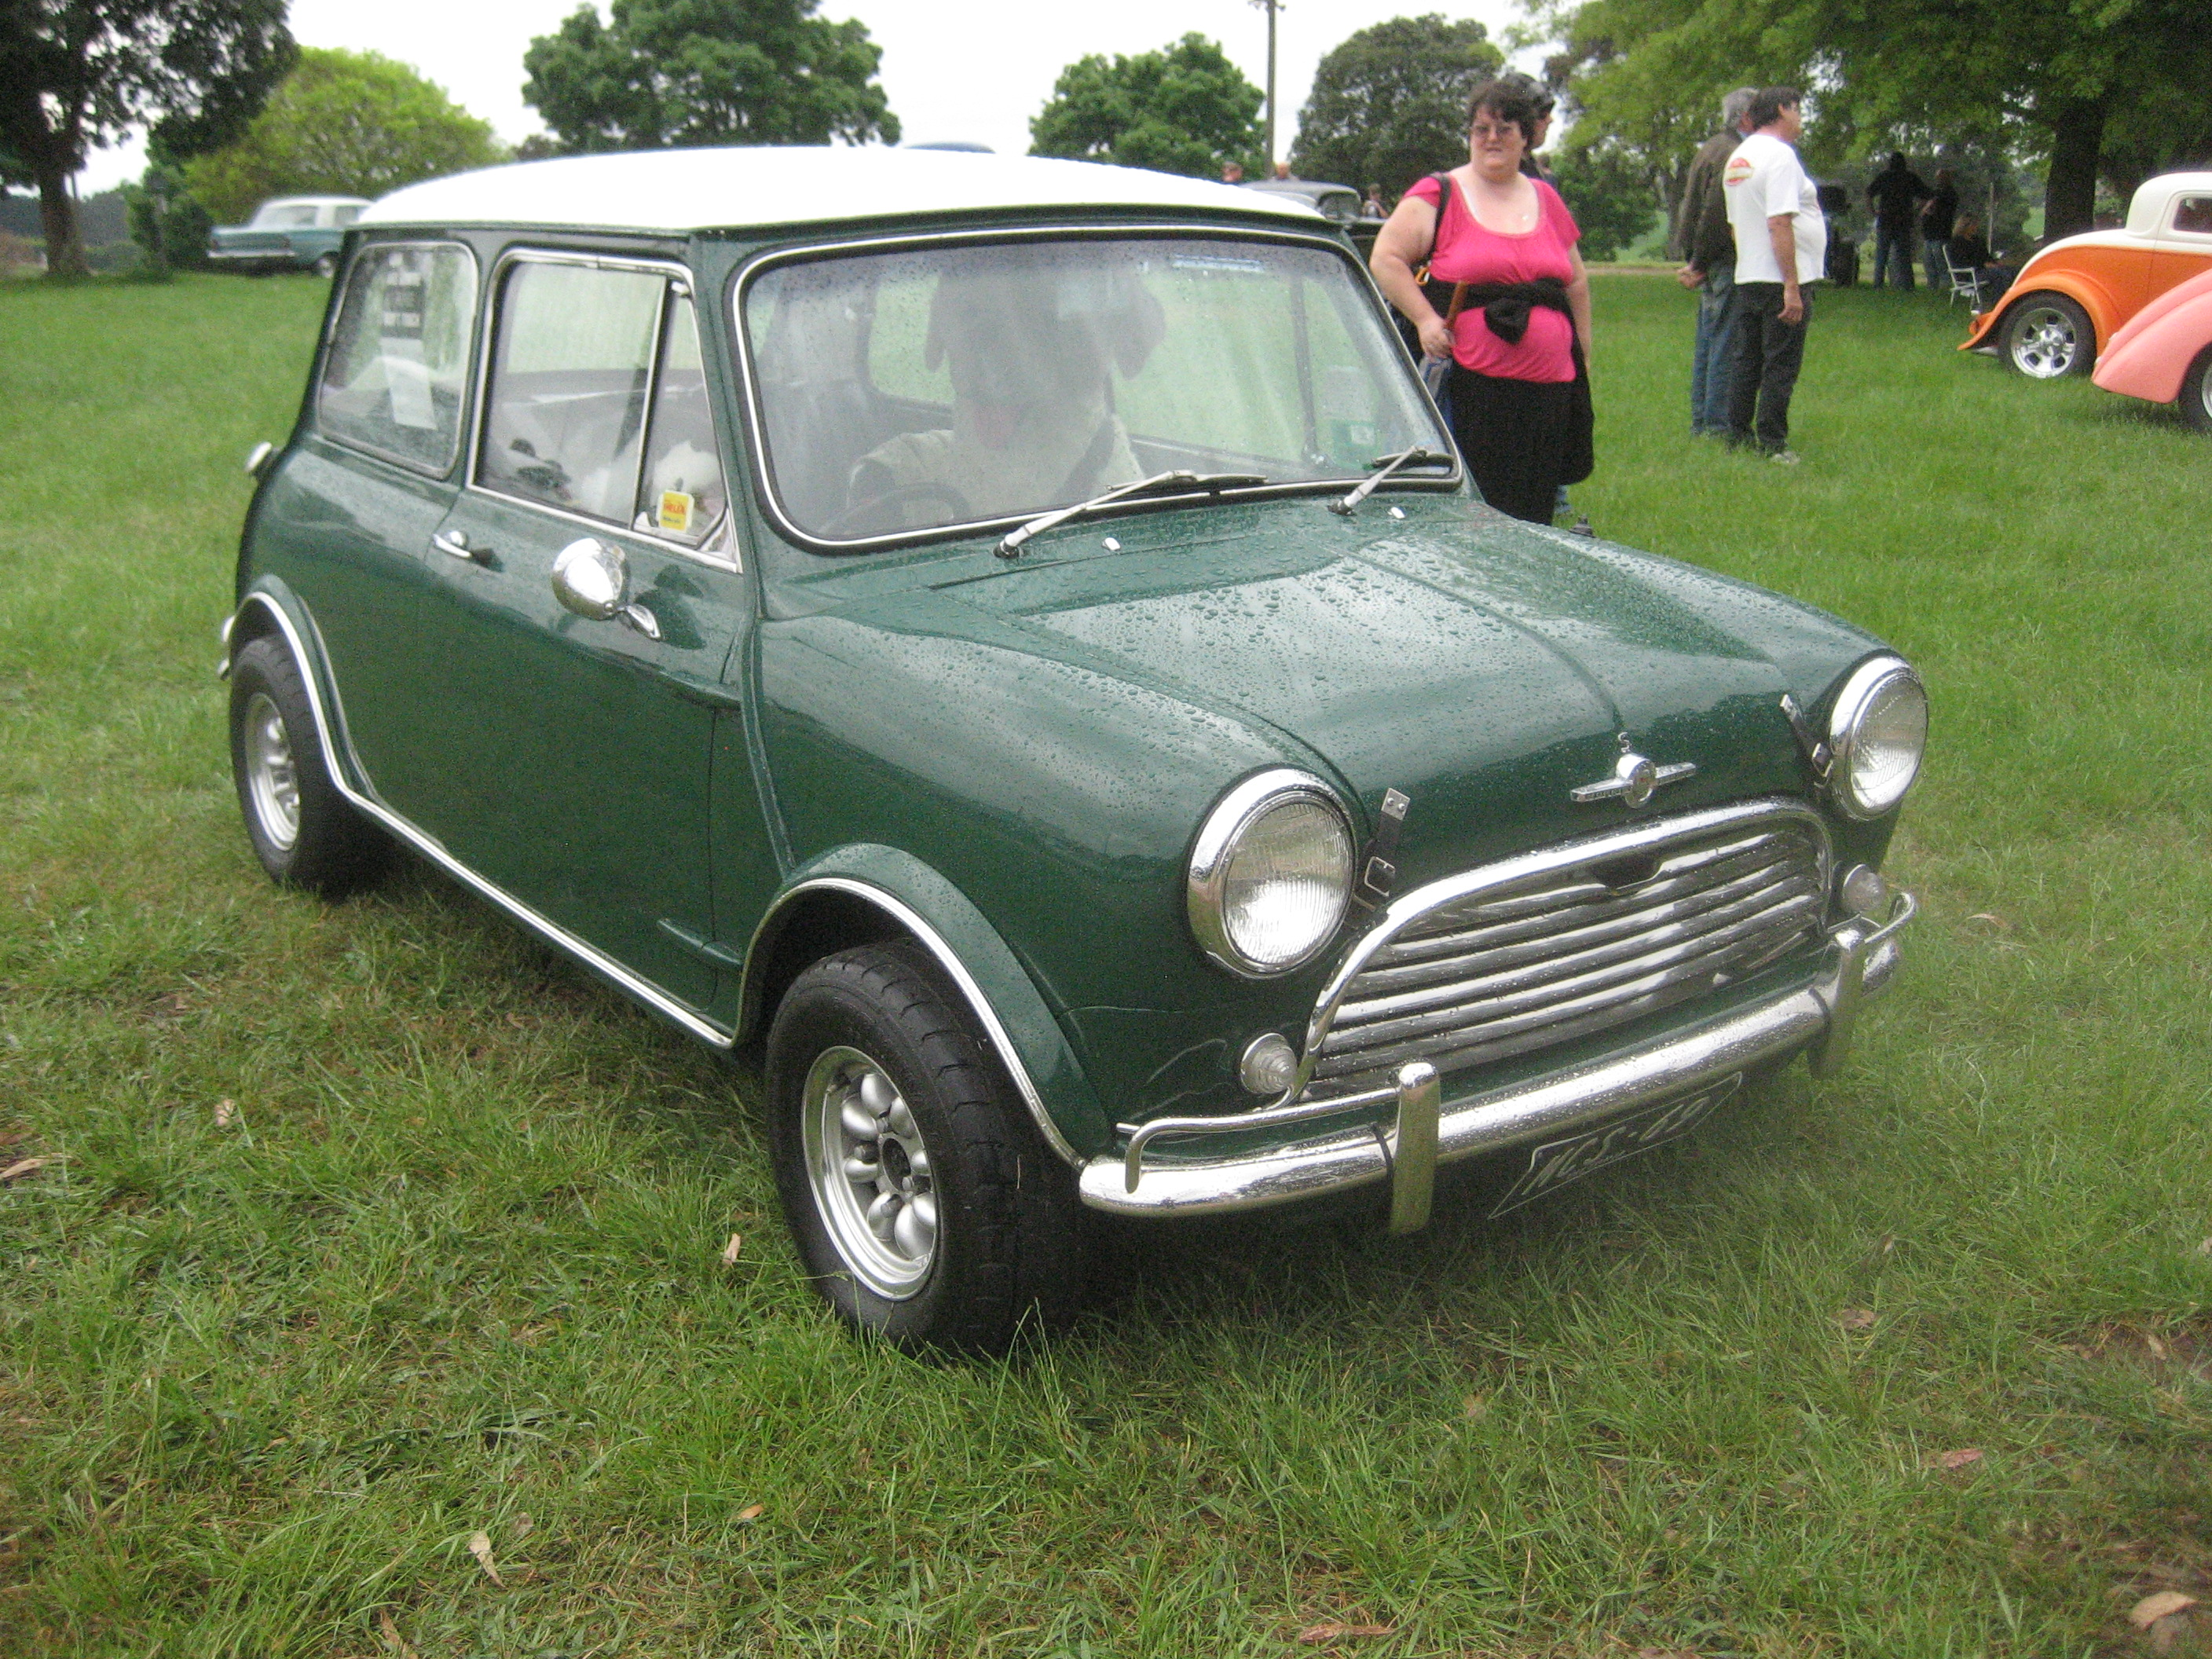 File:Morris Mini Cooper S.jpg - Wikimedia Commons